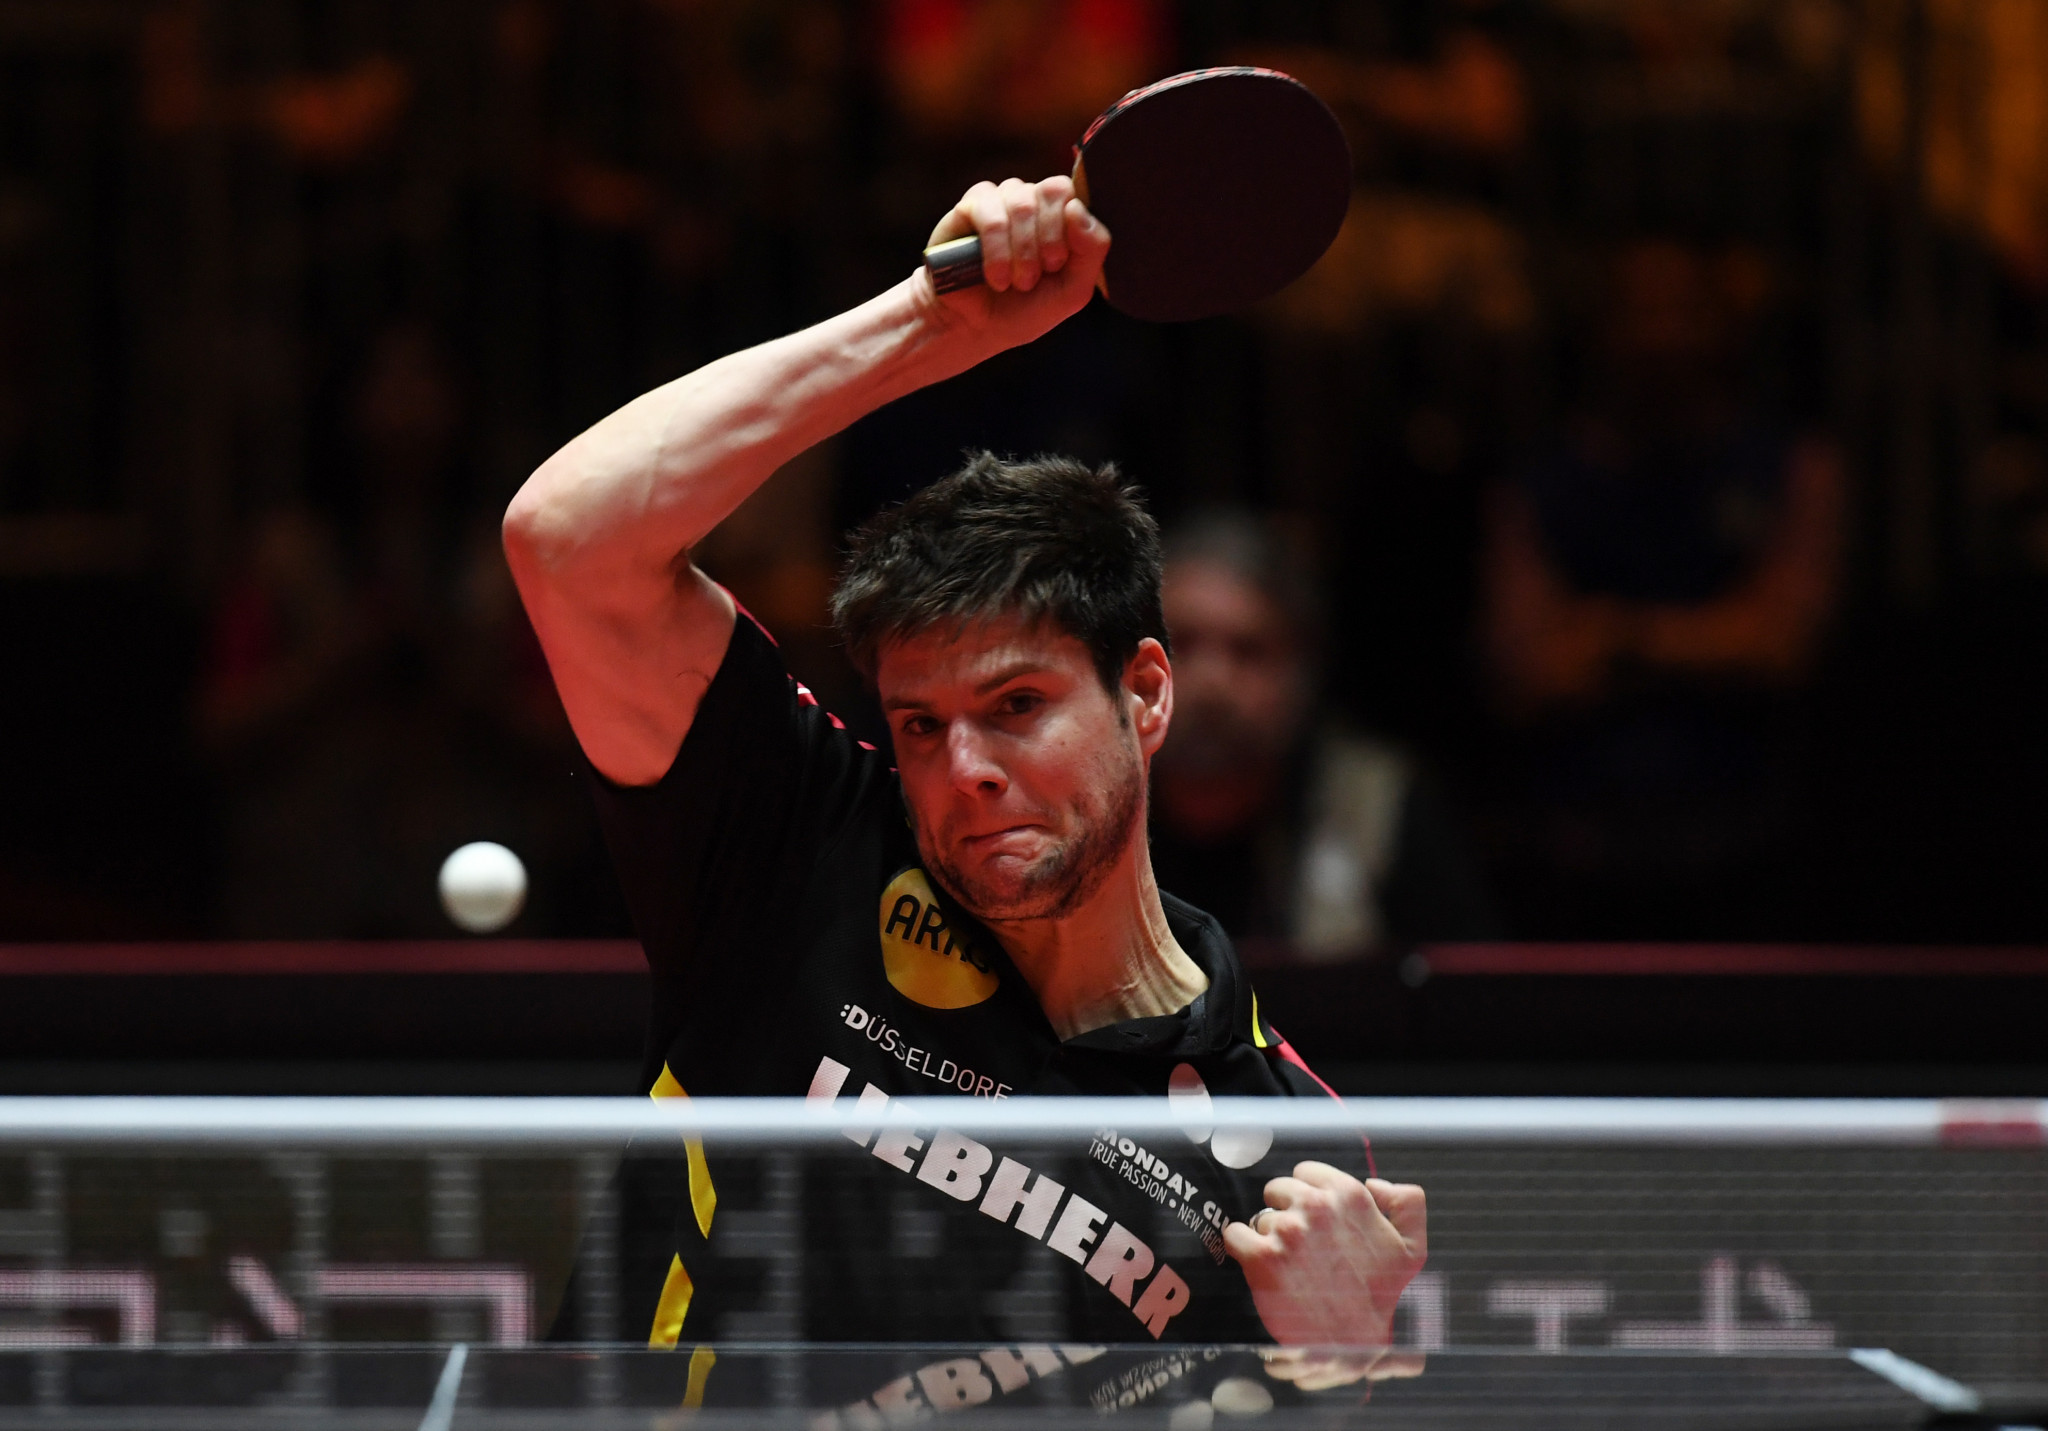 Dimitrij Ovtcharov has won the last four ITTF-Europe Top 16 Cup tournaments ©Getty Images